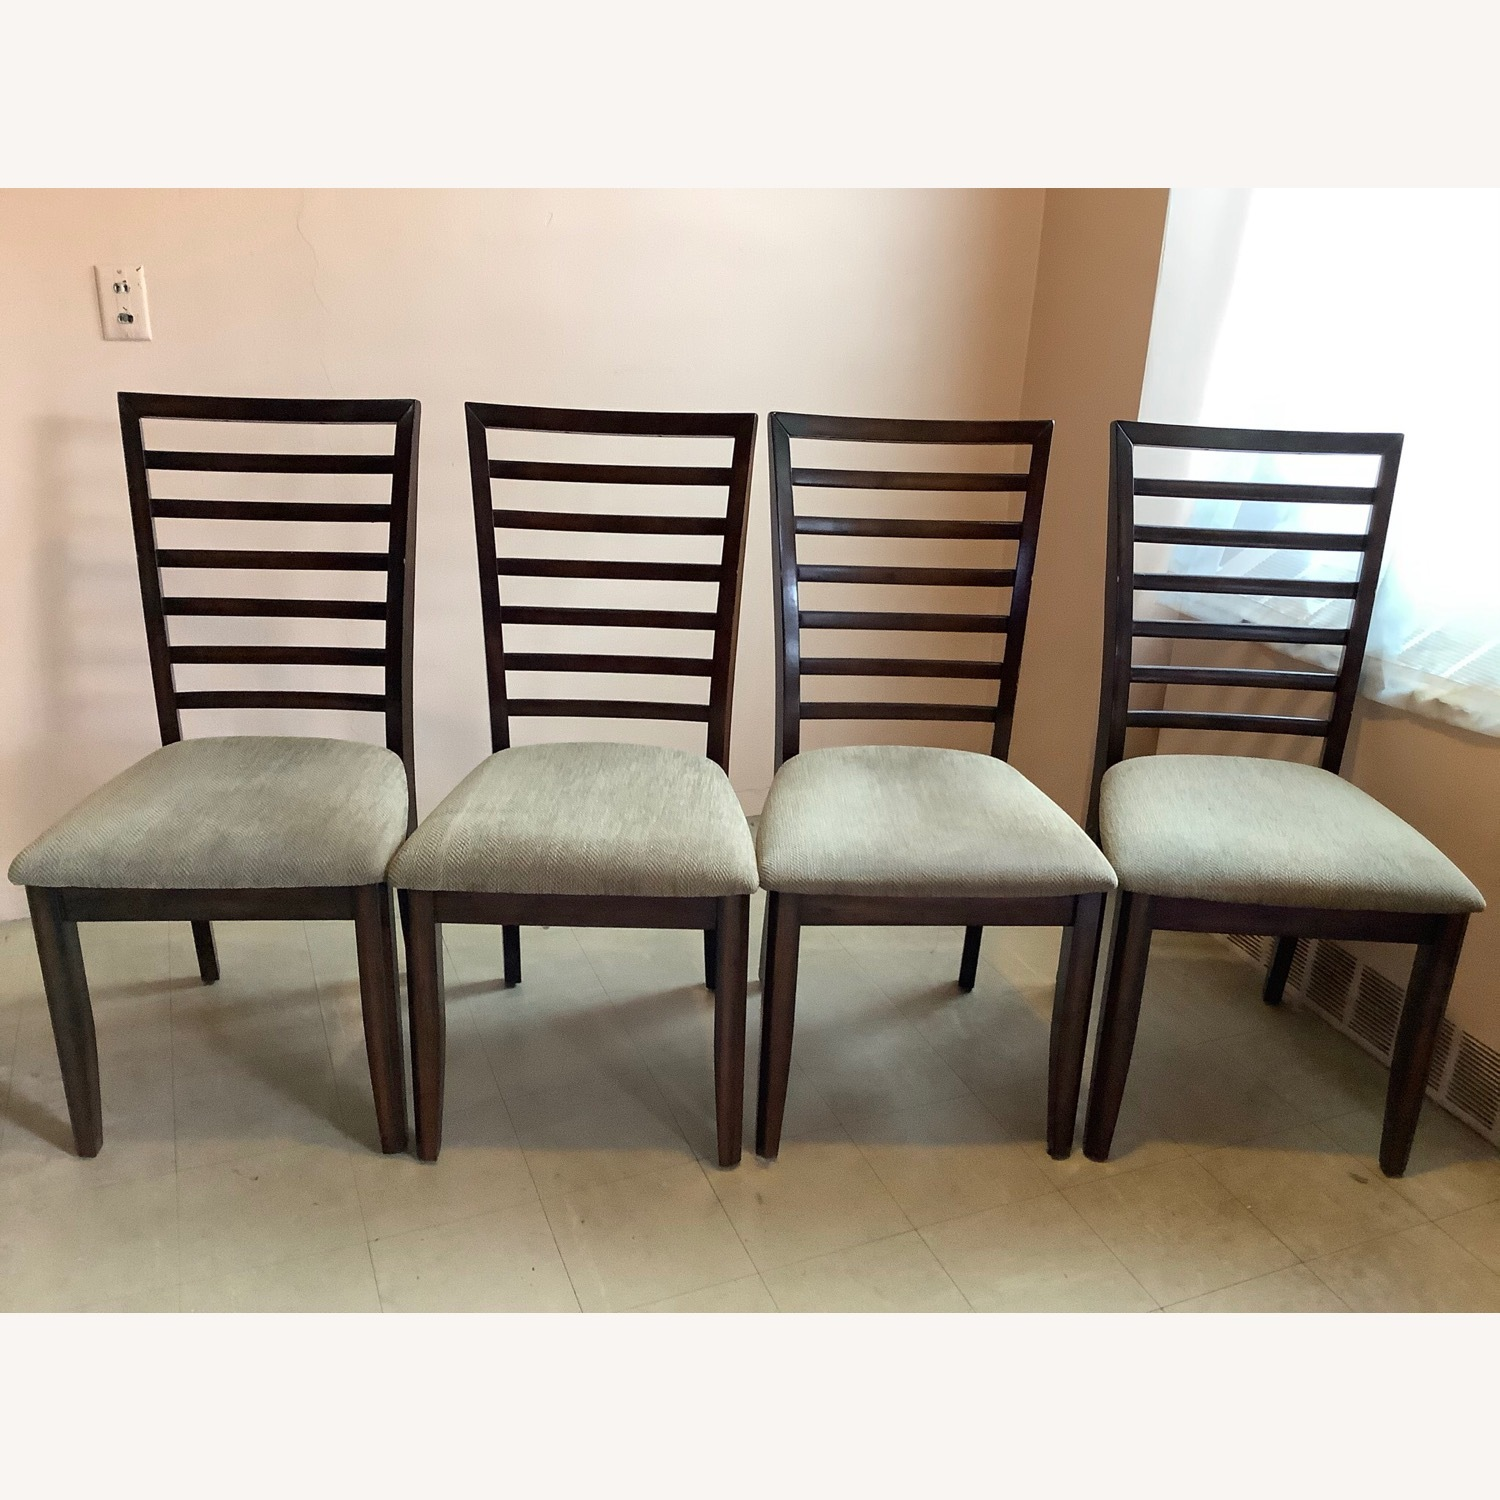 Raymour & Flanigan Butterfly Leaf Table with 4 chairs - image-4